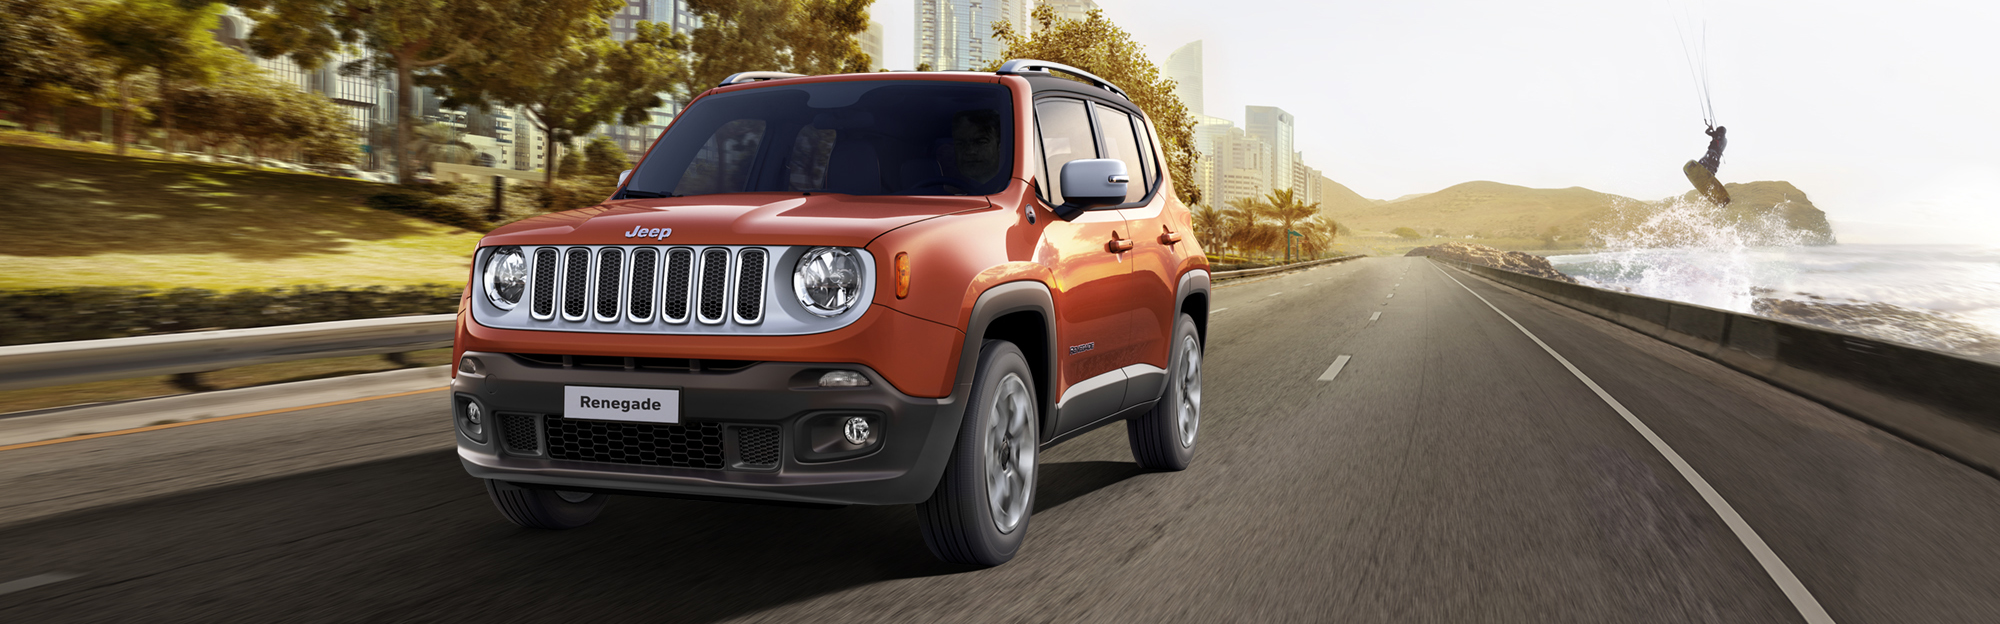 The All-New 2015 Jeep®Renegade